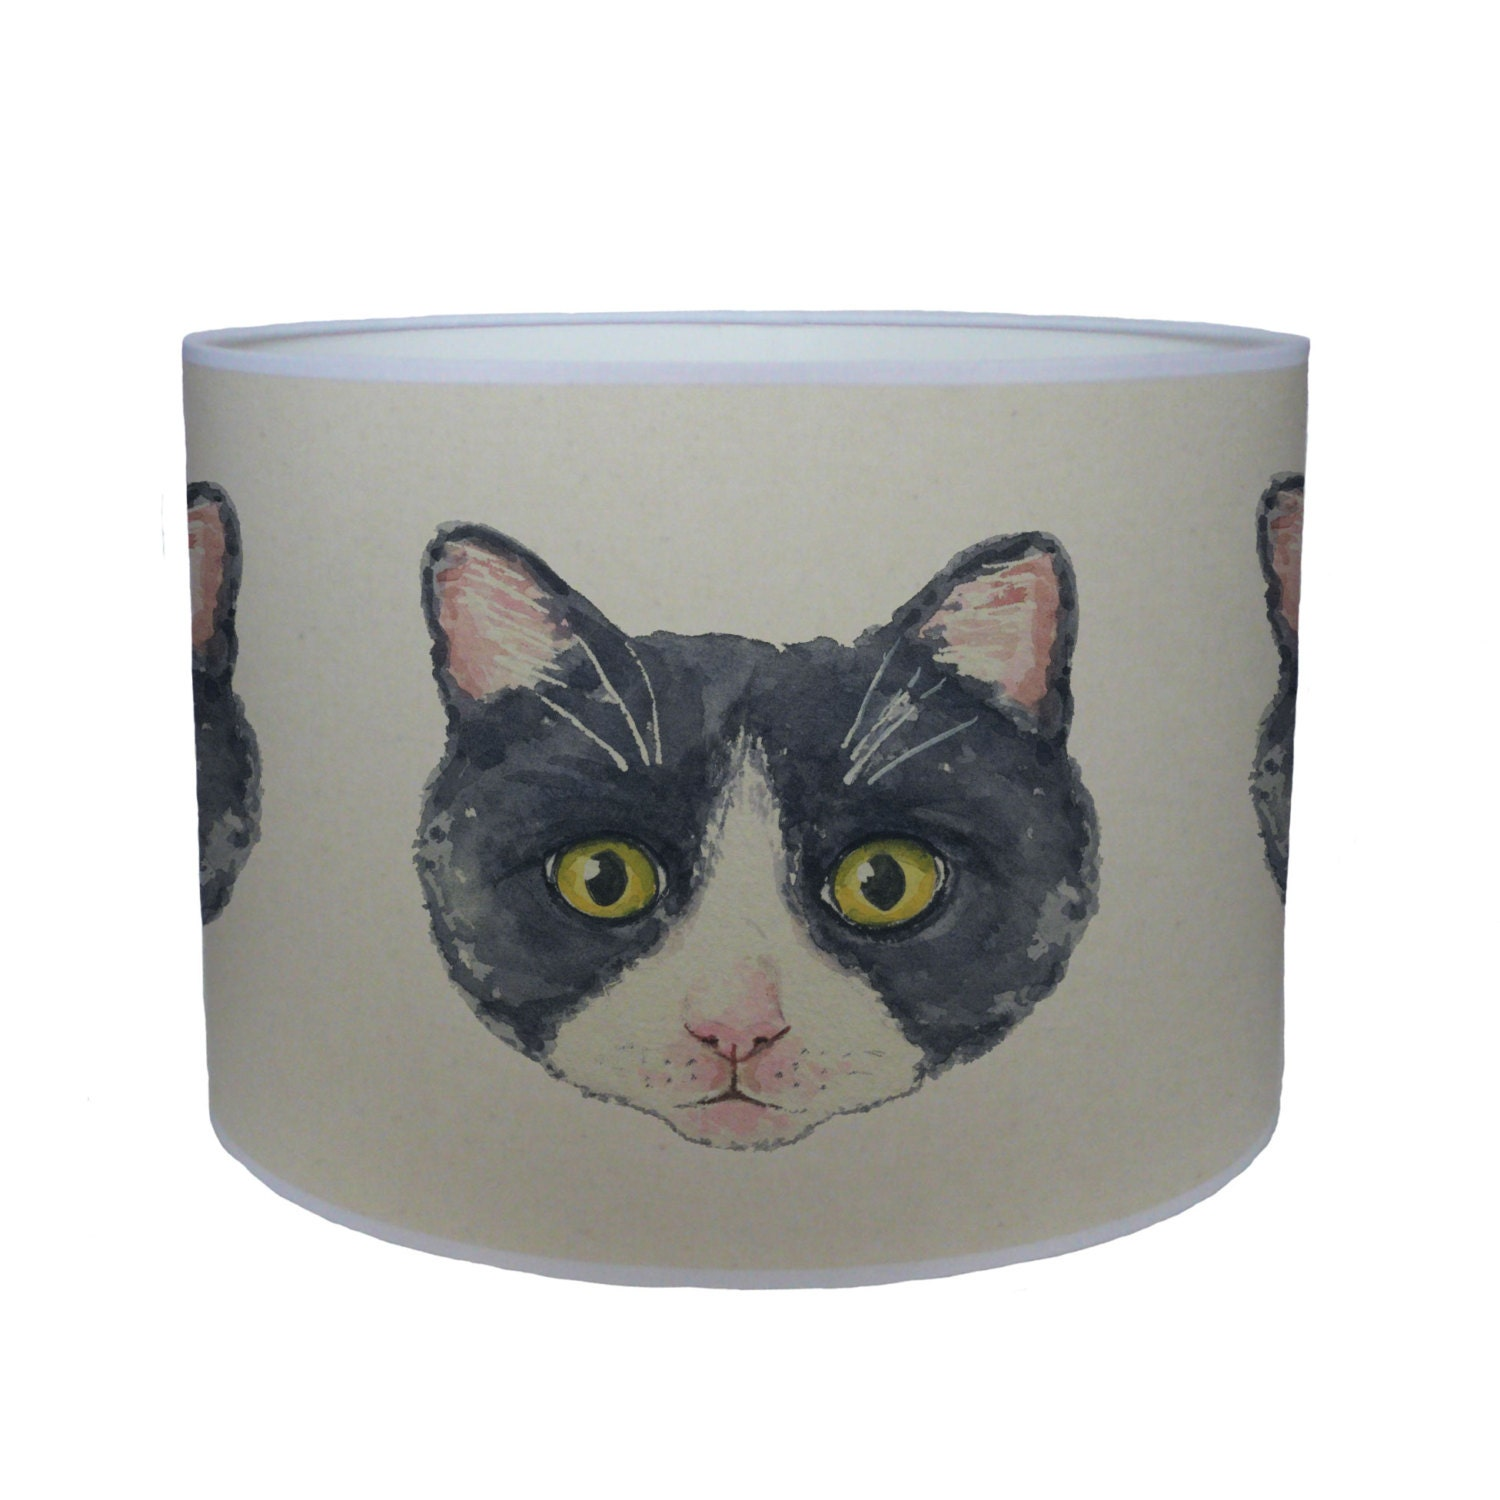 Black and white cat shade lamp shade ceiling shade drum lampshade lighting handmade home